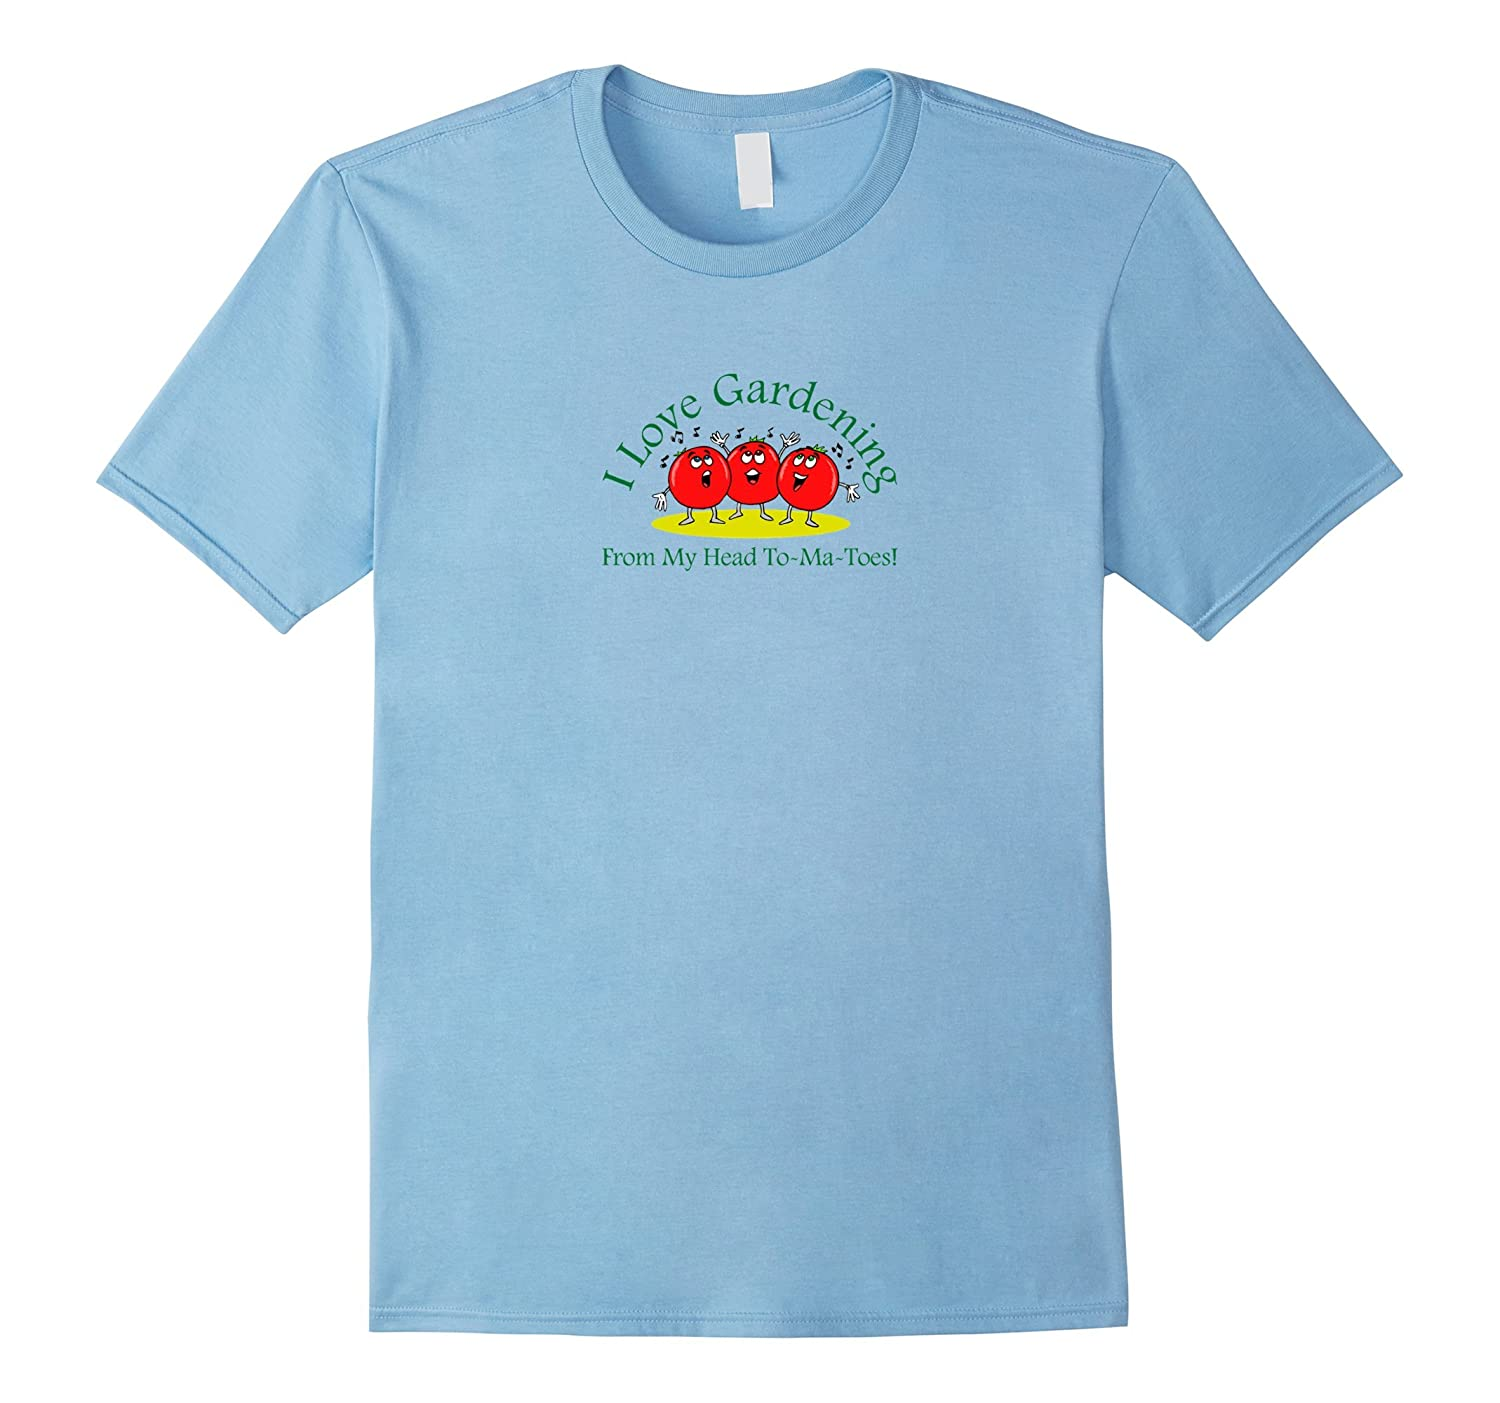 I Love Gardening From My Head To-Ma-Toes T-Shirt